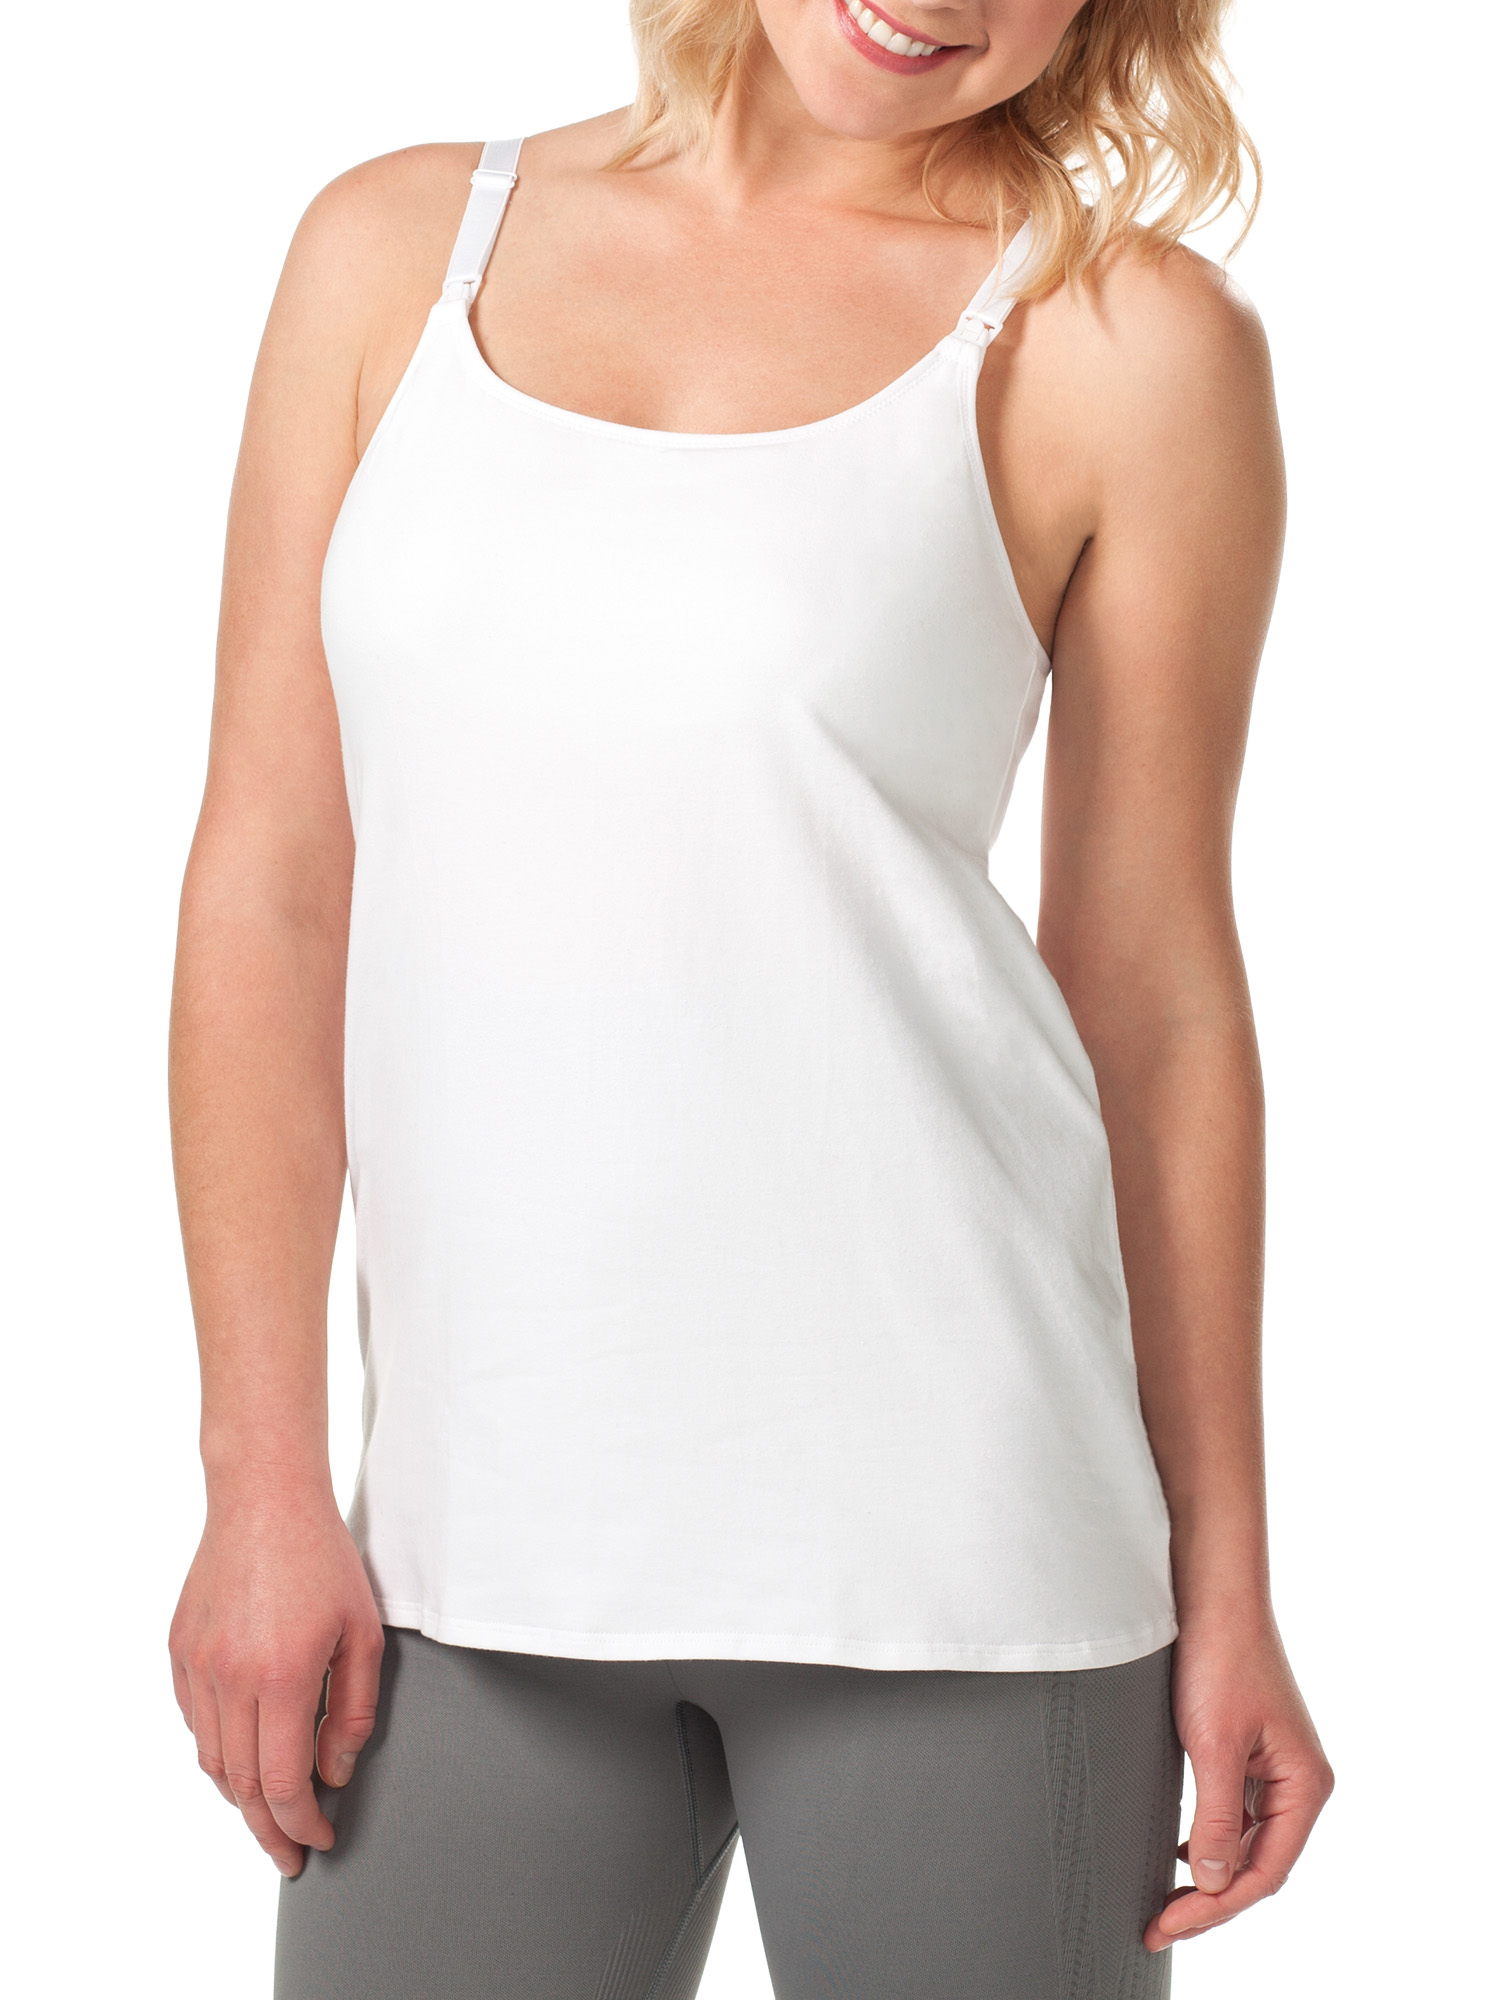 Maternity Nursing Cami with Built-in Shelf Bra - Available in Plus Size, Style L319